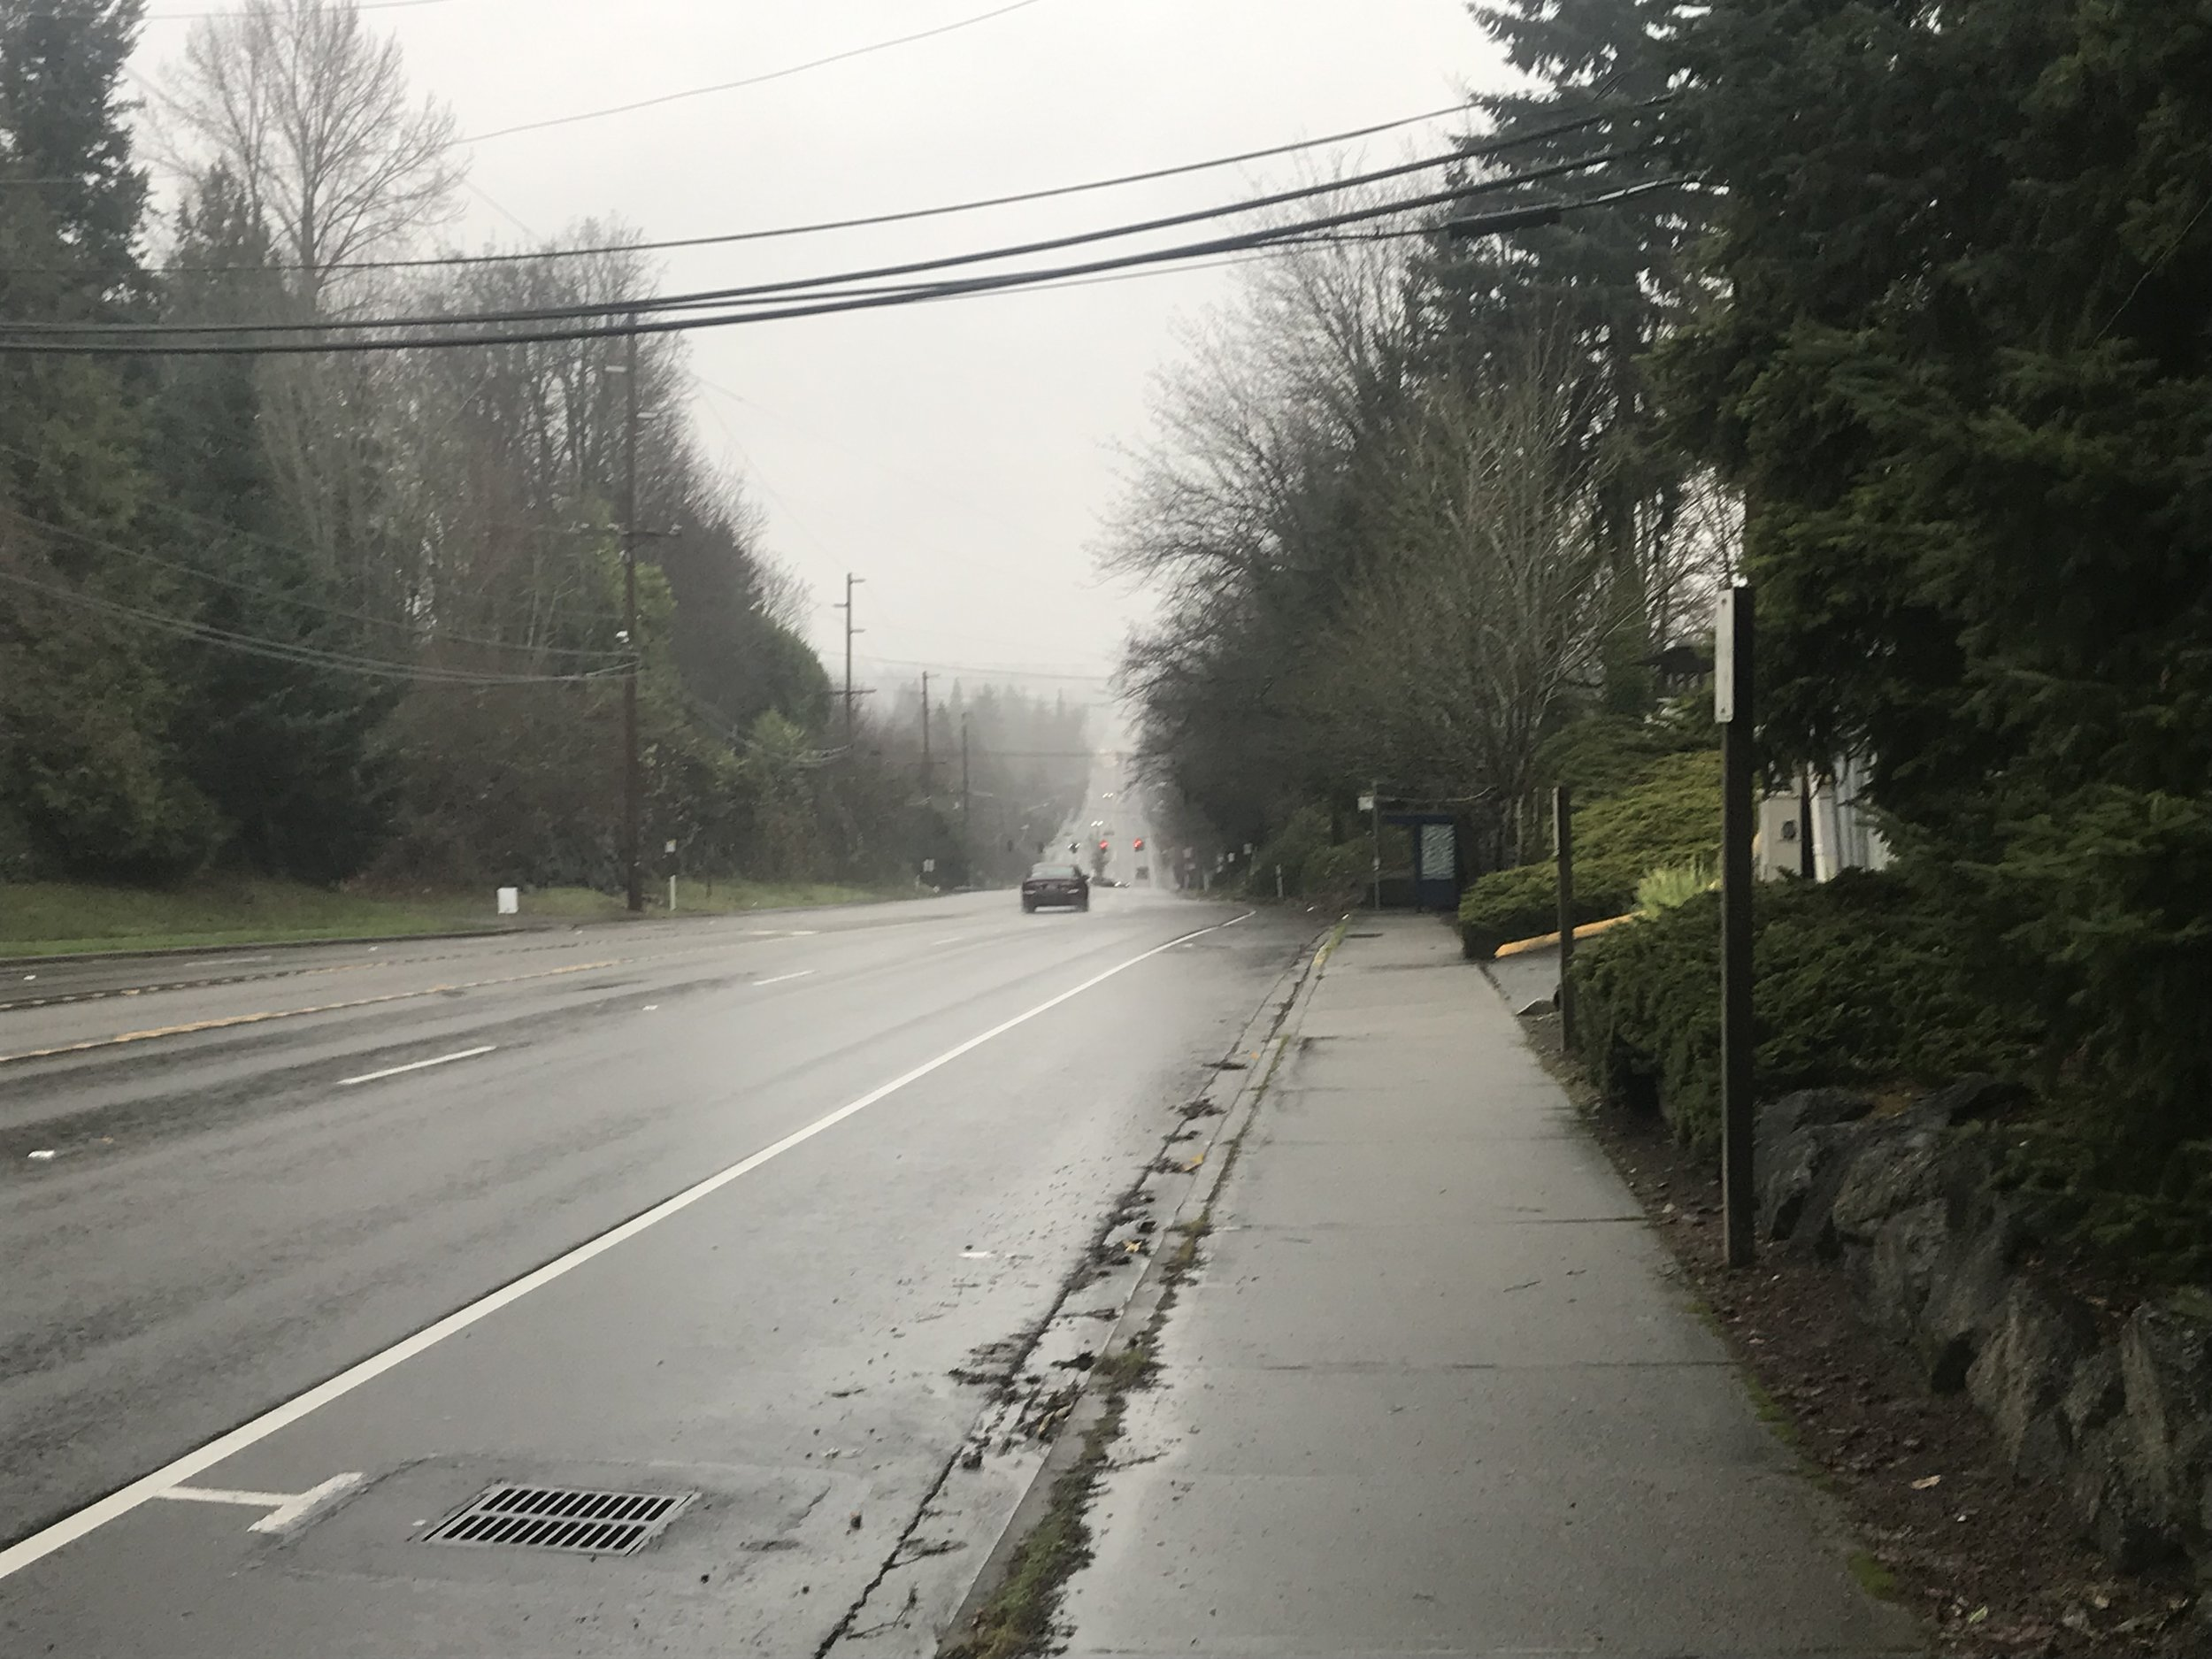 Heading north on 1st Ave through Normandy Park towards Burien